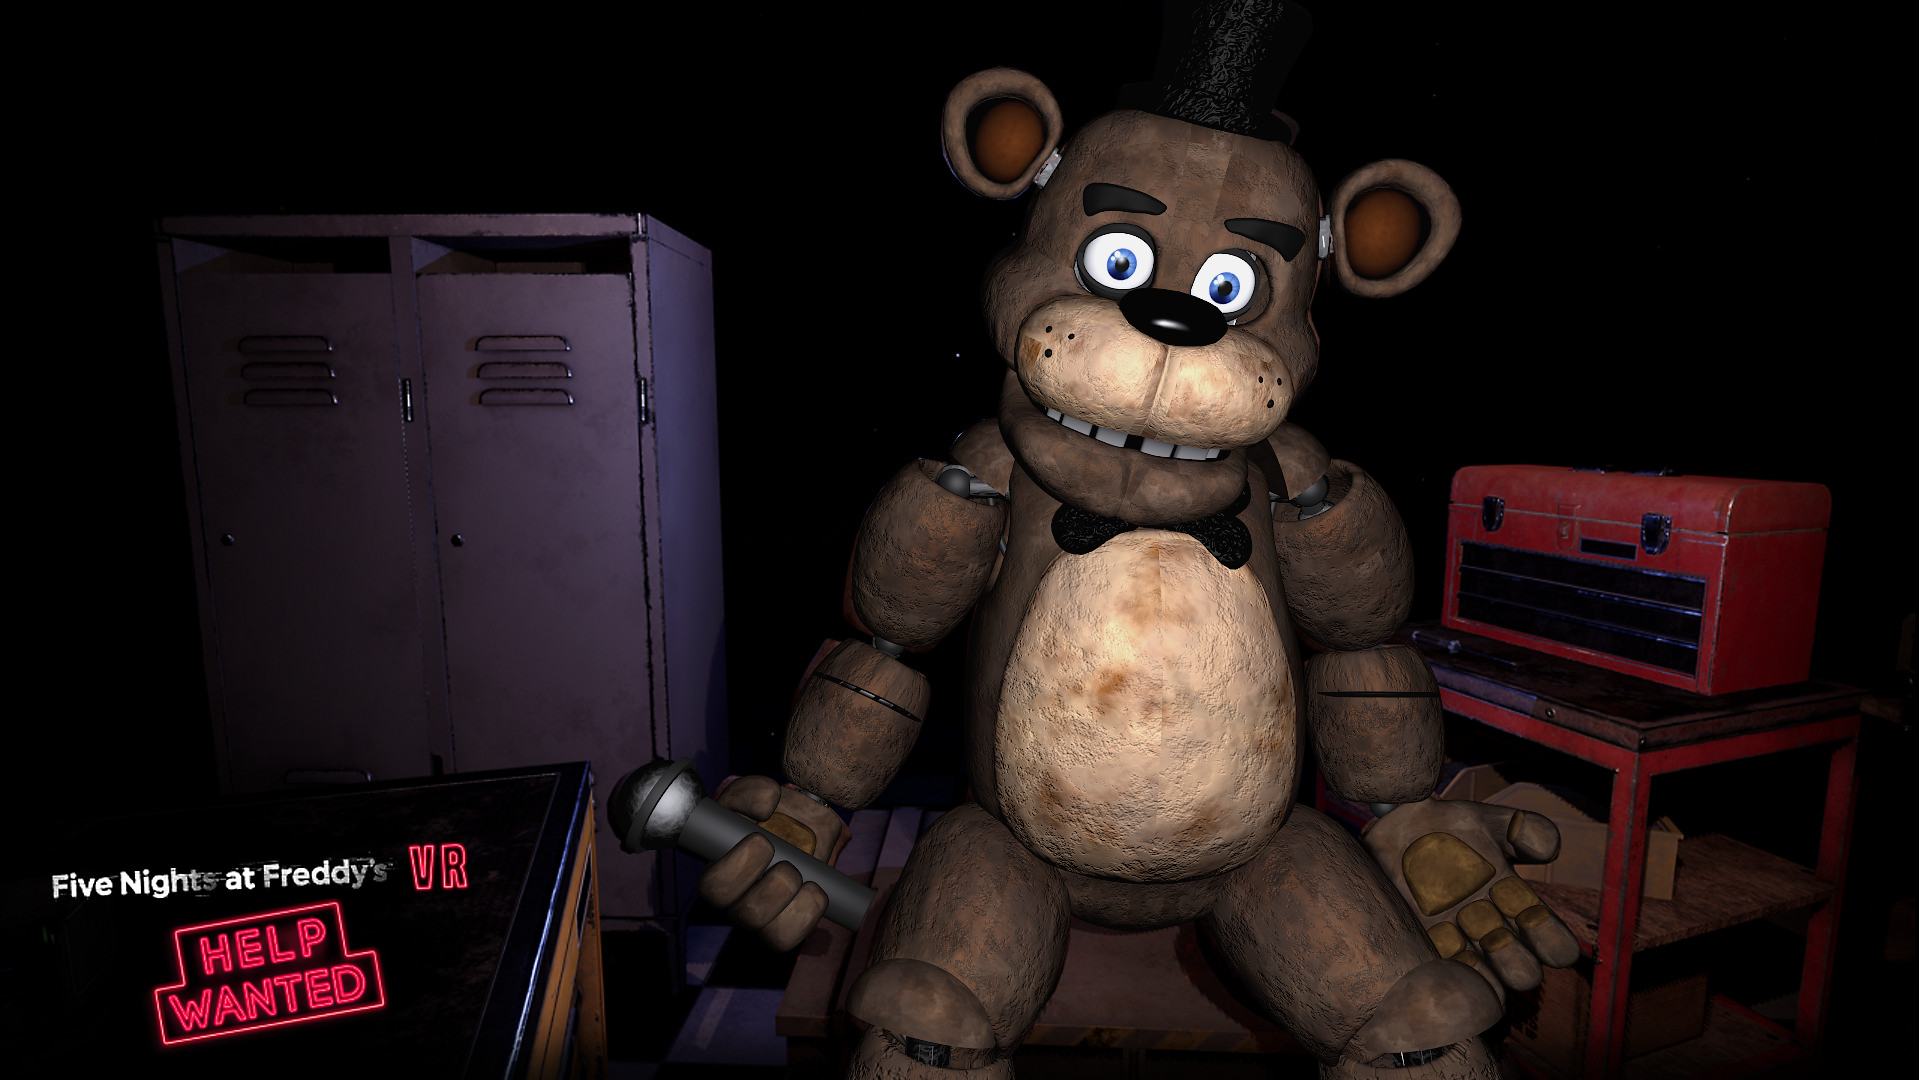 Five Nights at Freddy's: Help Wanted (PS4)